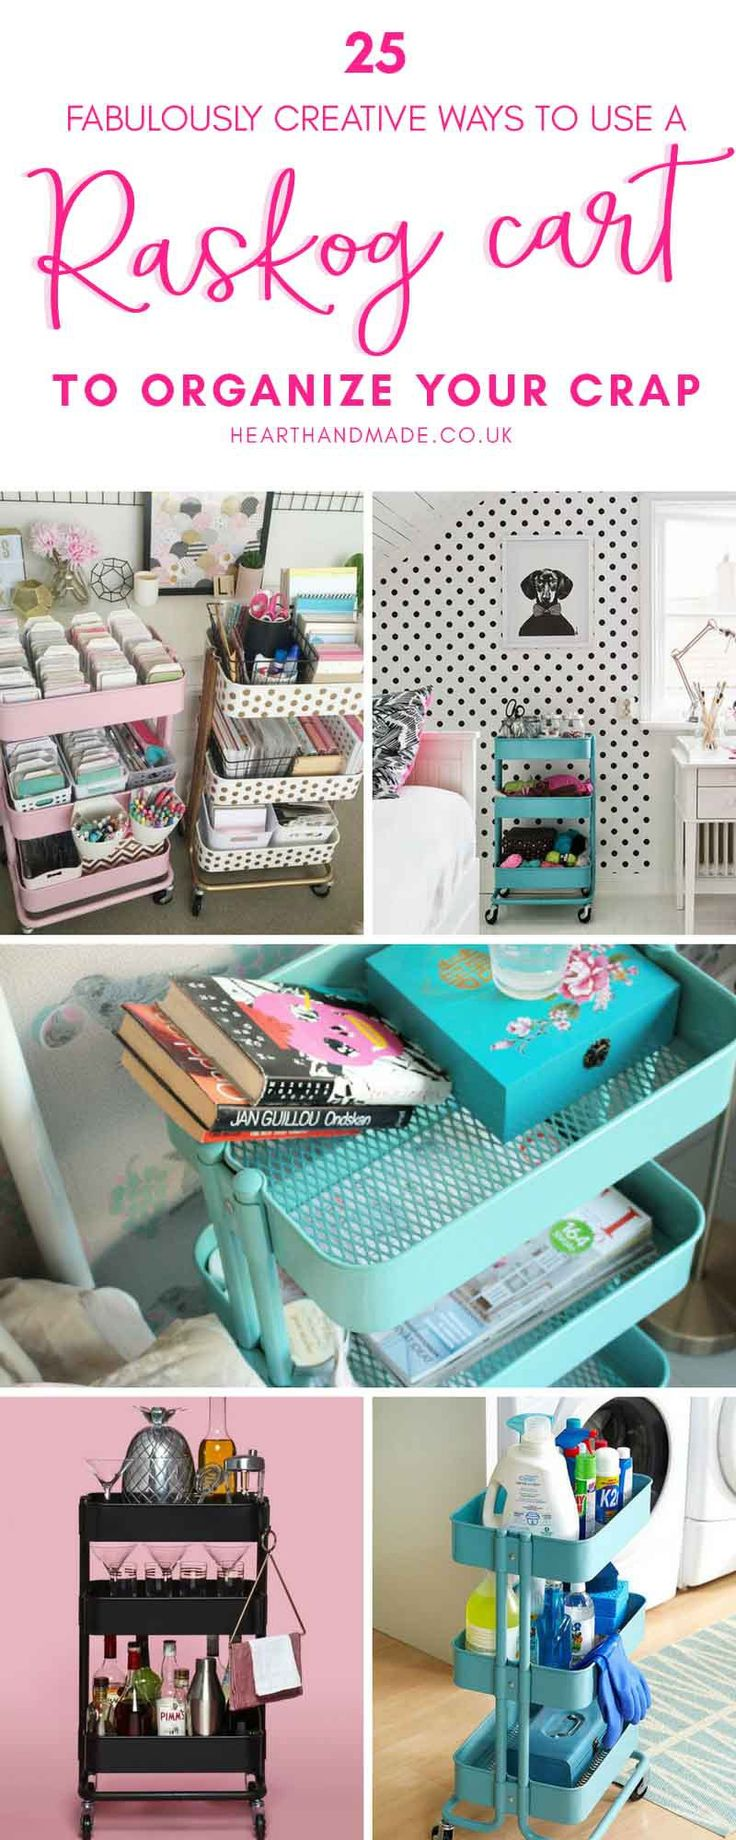 14 best Cleaning Carts images on Pinterest | Cleaning cart, Cart and ...